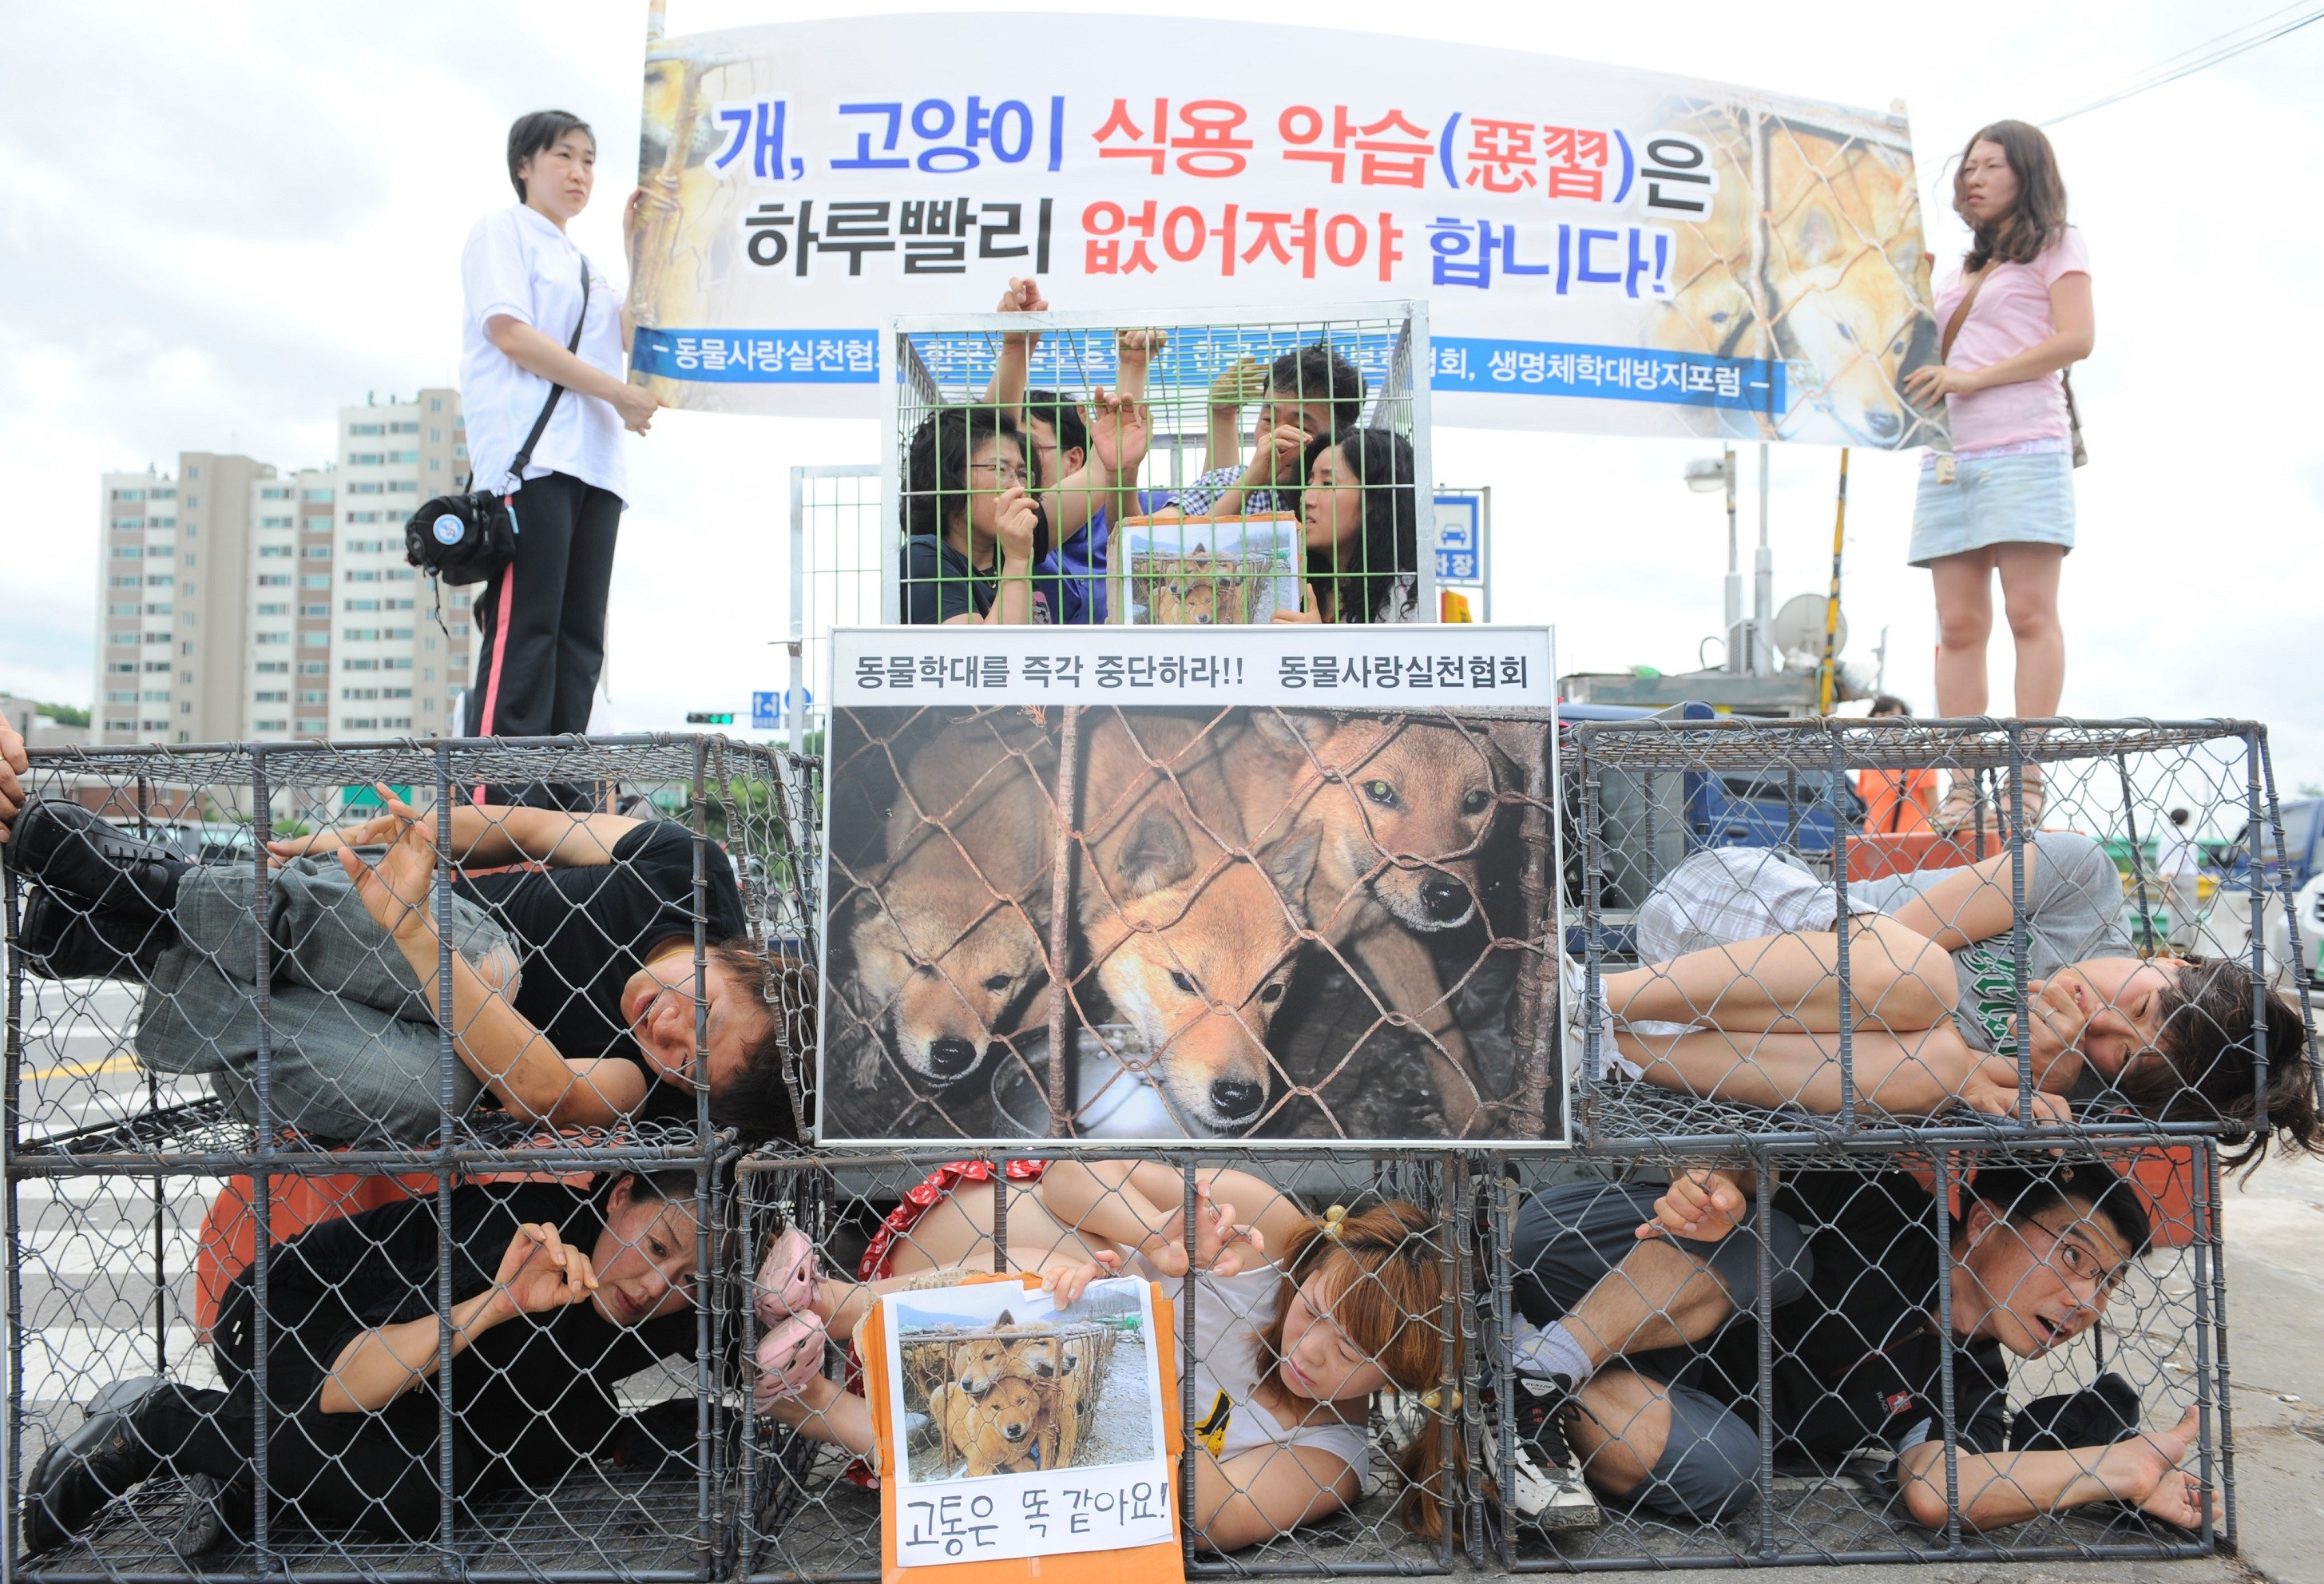 South Korean animal rights activists protest dog meat